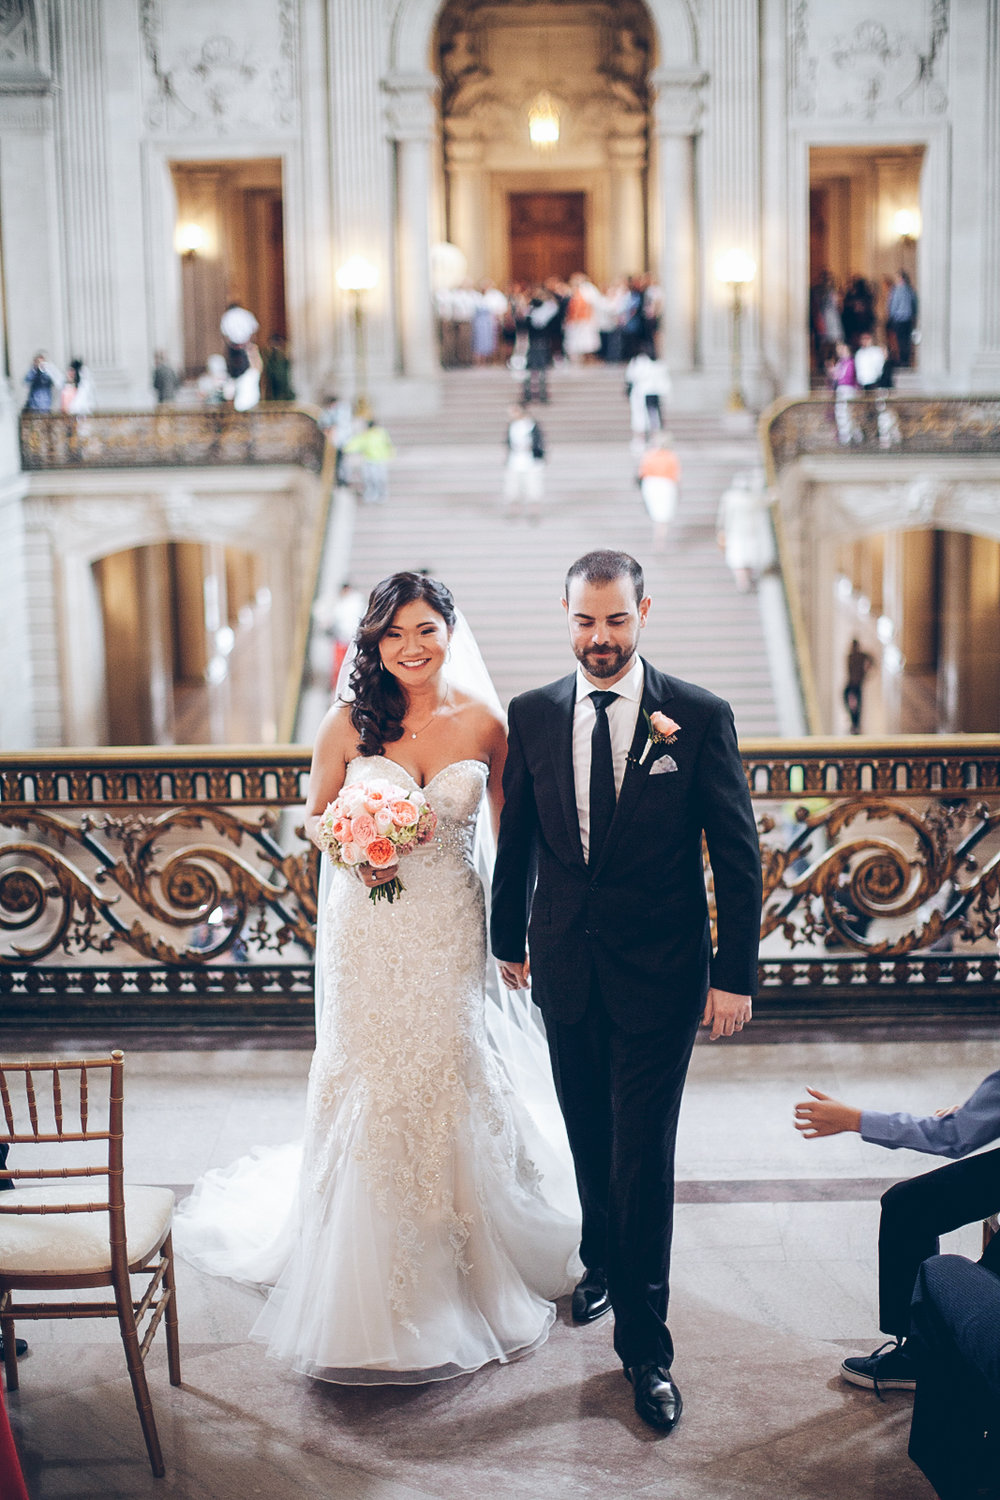 San_francisco_city_hall_wedding_photography_meegan_travis_ebony_siovhan_bokeh_photography_28.jpg